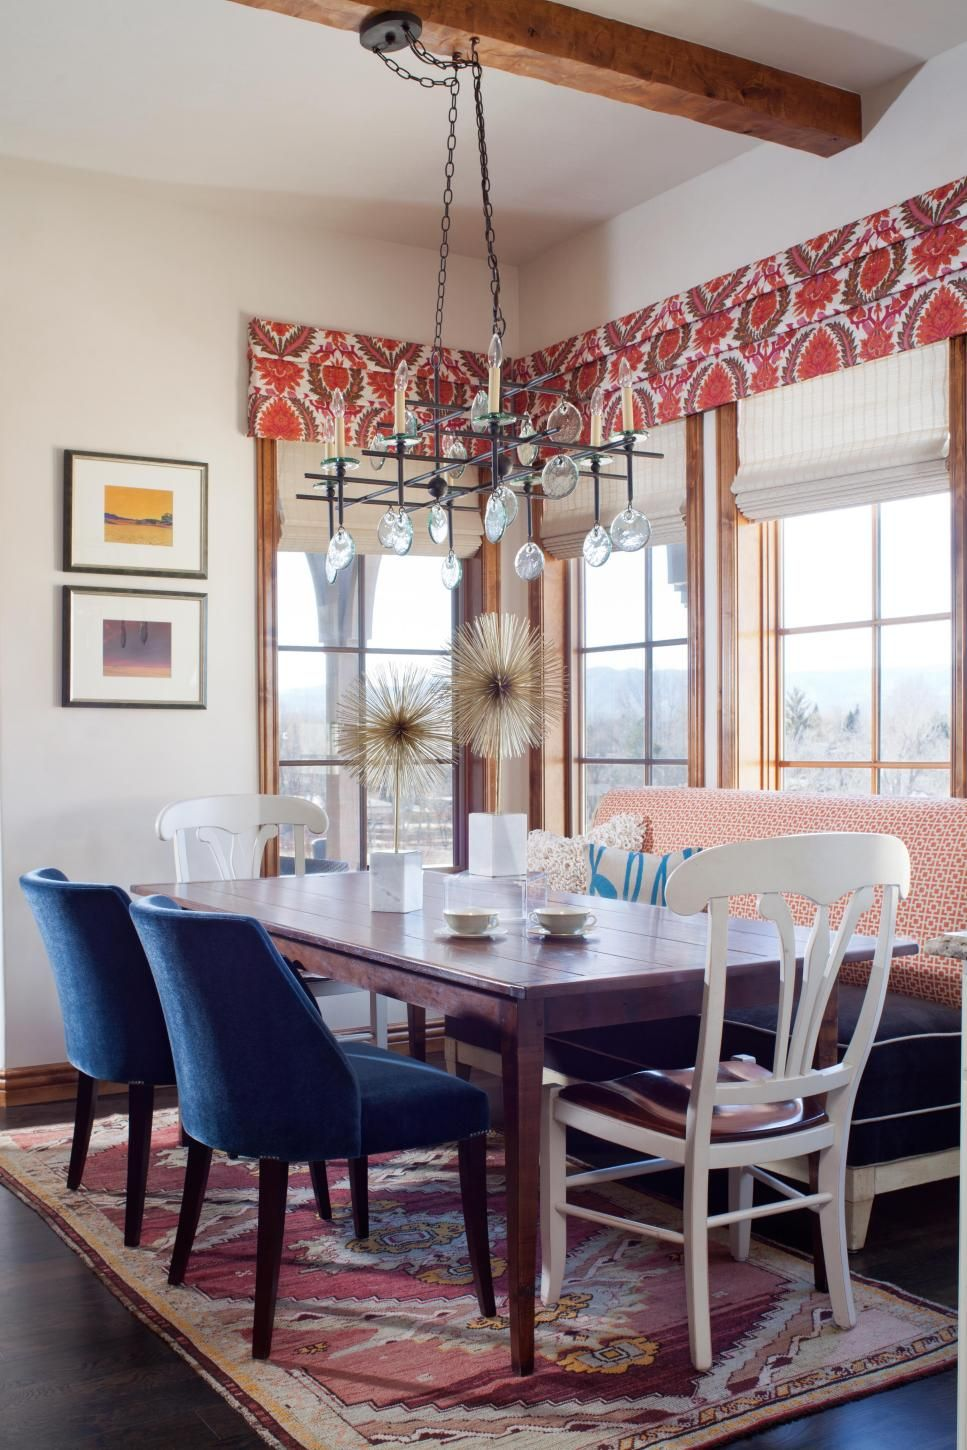 A Rustic Dark Wood Dining Table Sets Casual Tone In This Sunny Eclectic Room Plenty Of Comfy Seating Including Graphic Red And White